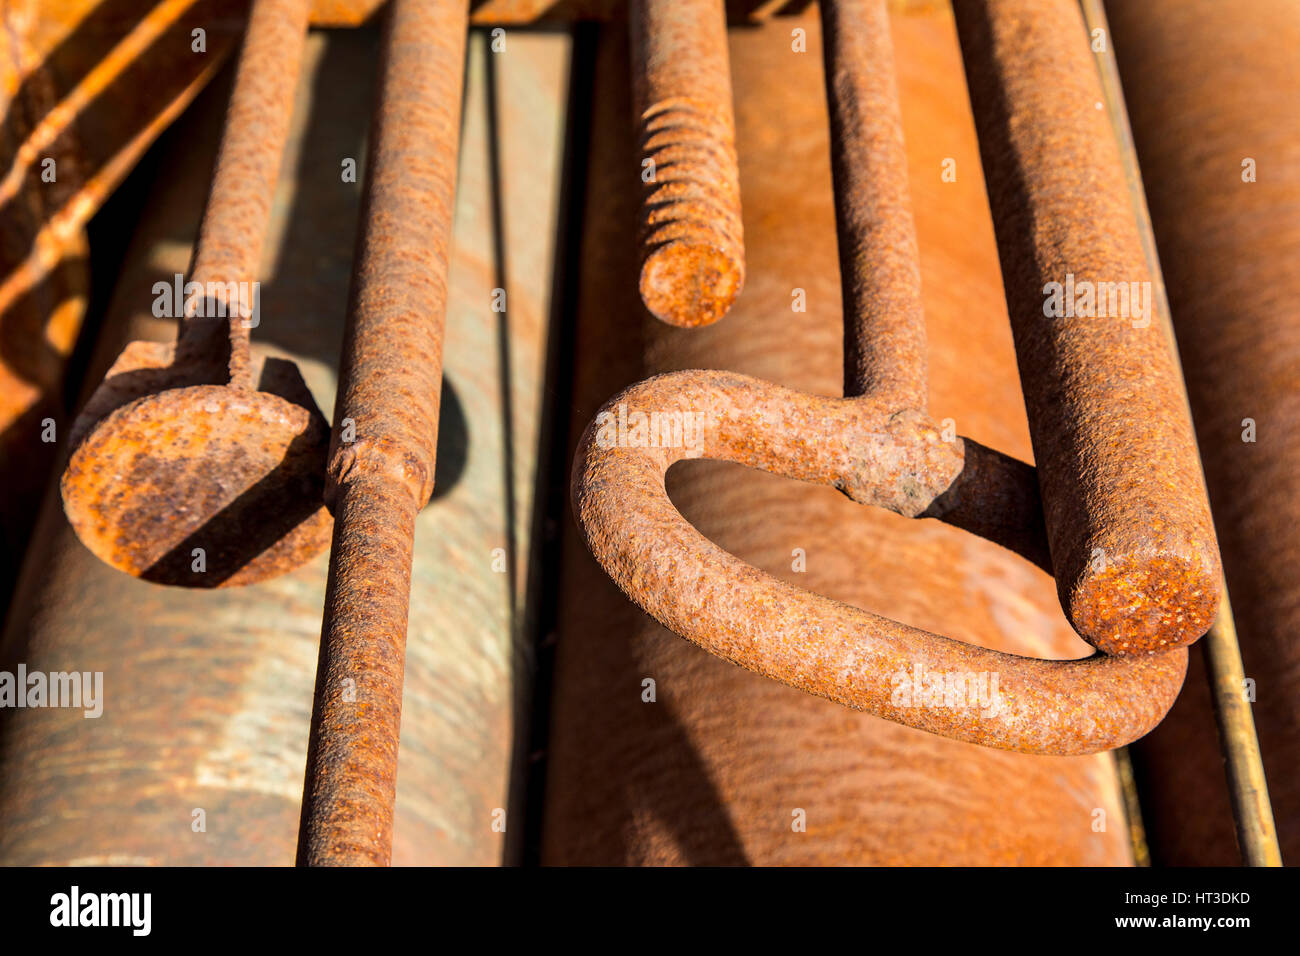 Rusty metal surface, structures, tools - Stock Image